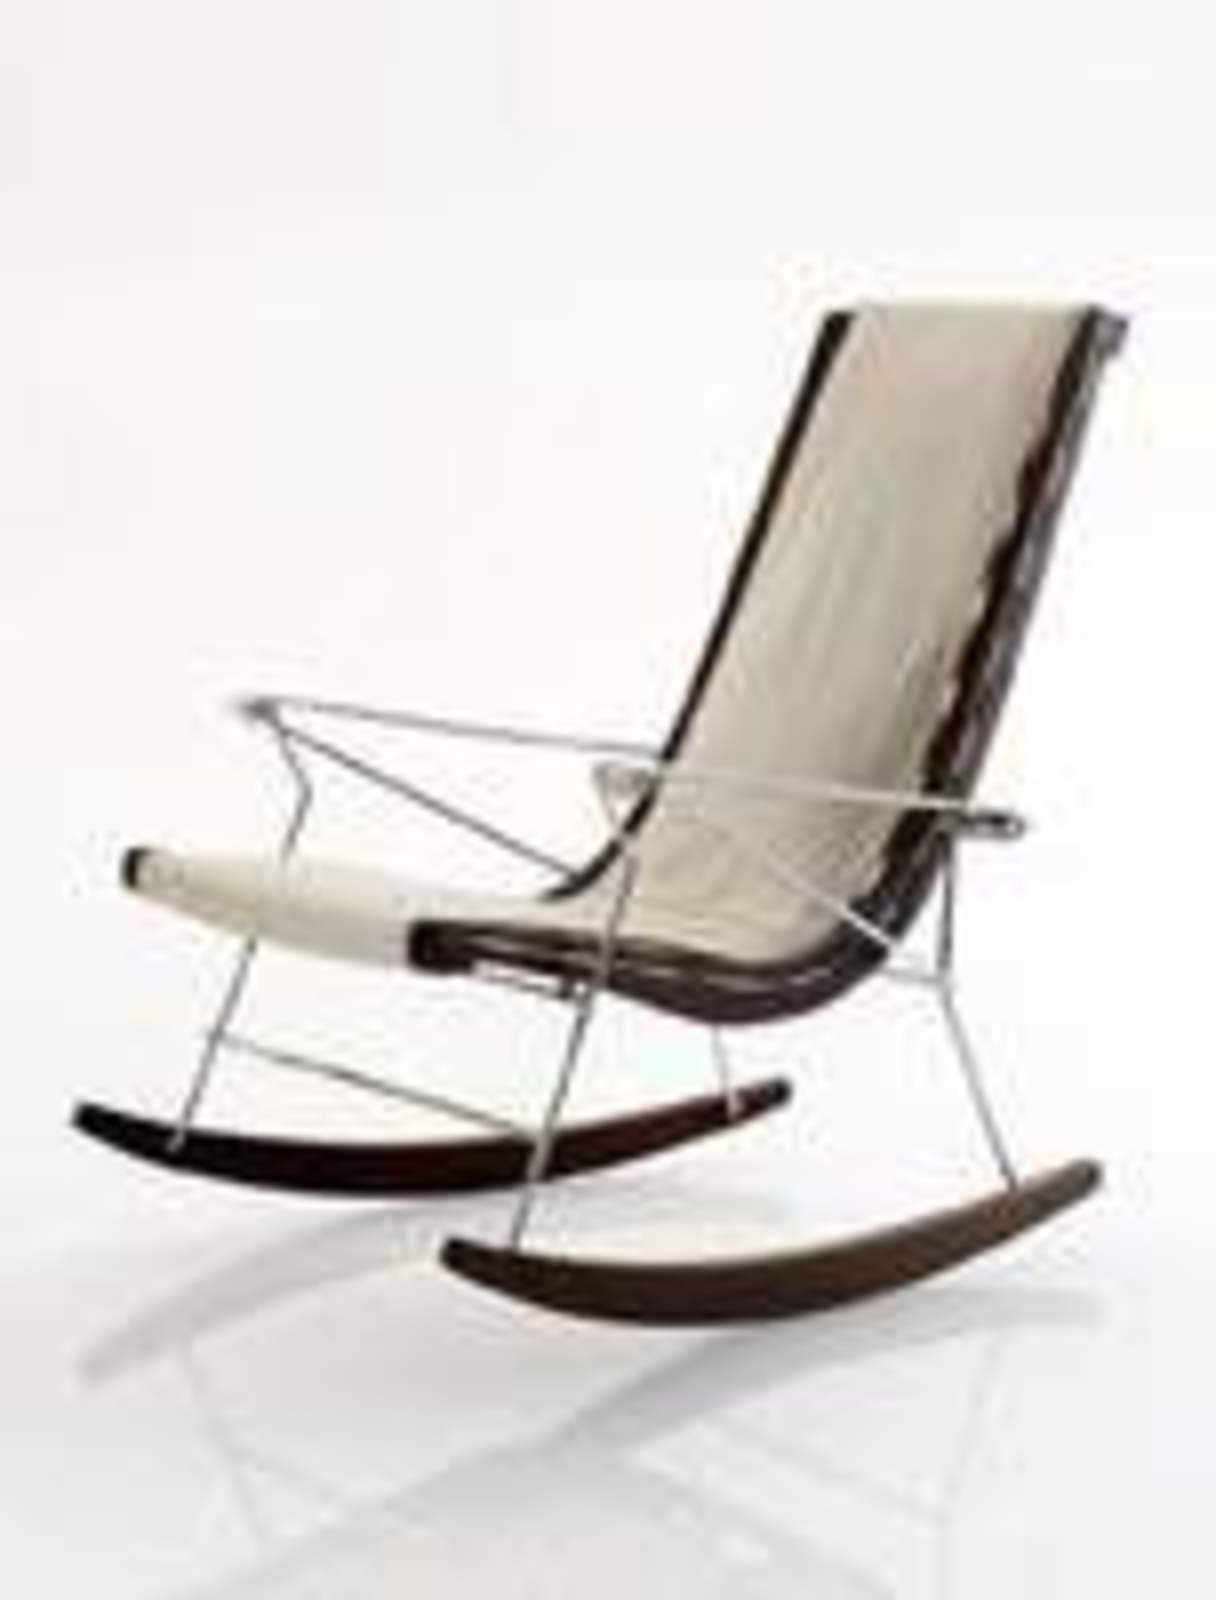 Marvelous photograph of Italia x Antonio Citterio: J.J. Rocking Chair Cool Hunting with #2E221E color and 1216x1600 pixels